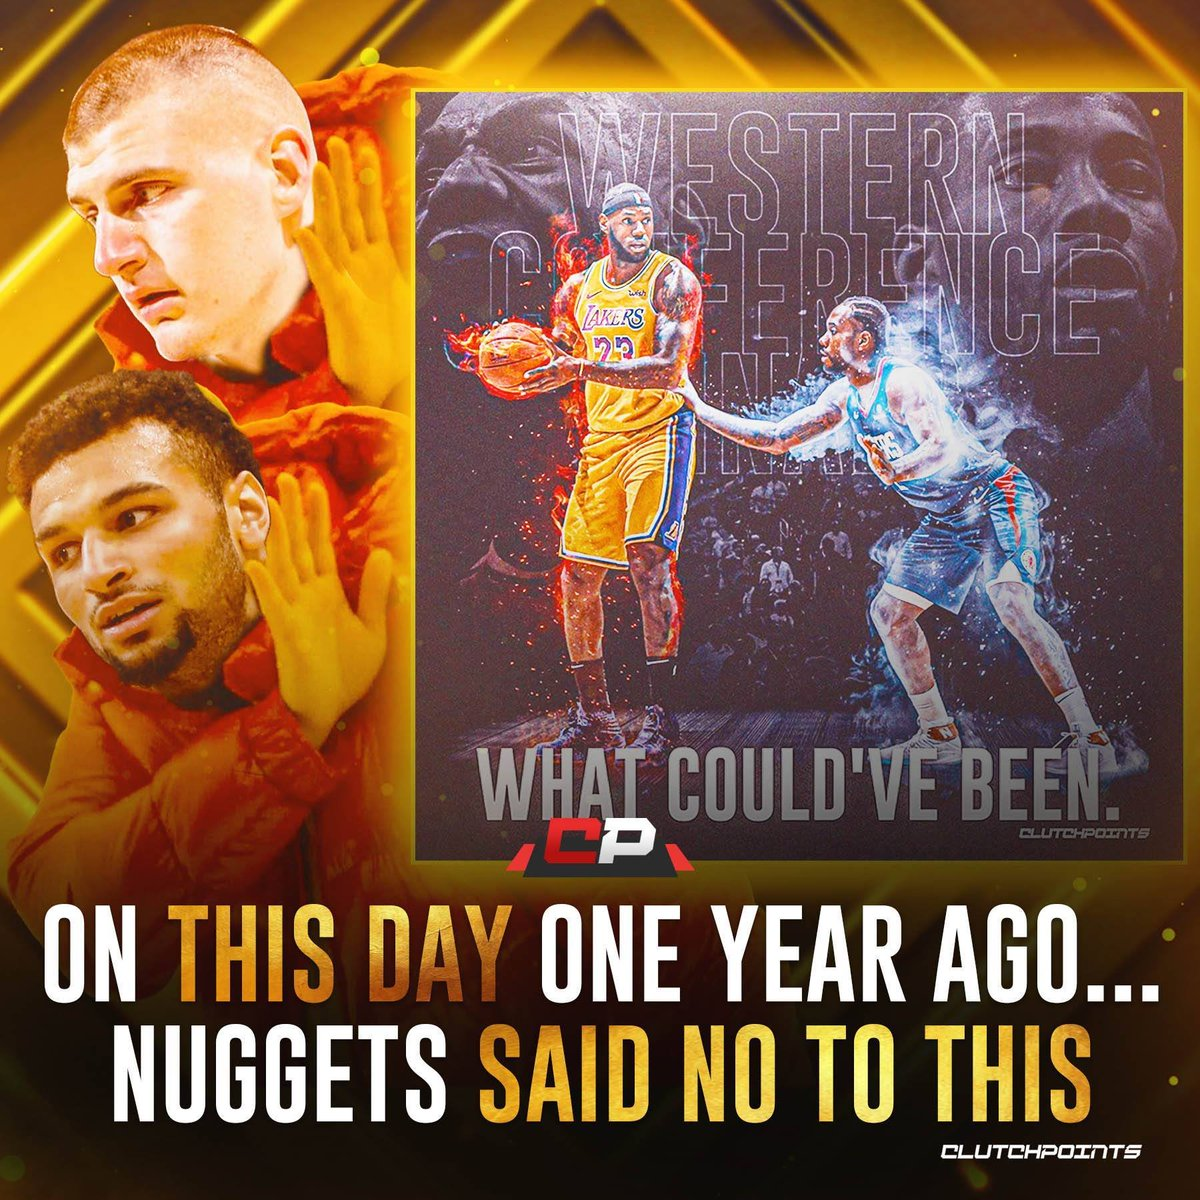 It's still hard to believe that the Nuggets came back from a 3-1 deficit not once, but TWICE in a single postseason 🔥 And everyone was hoping for that Lakers vs. Clippers Conference Finals 😅 Hands down a Top 3 team achievement in the NBA 👏